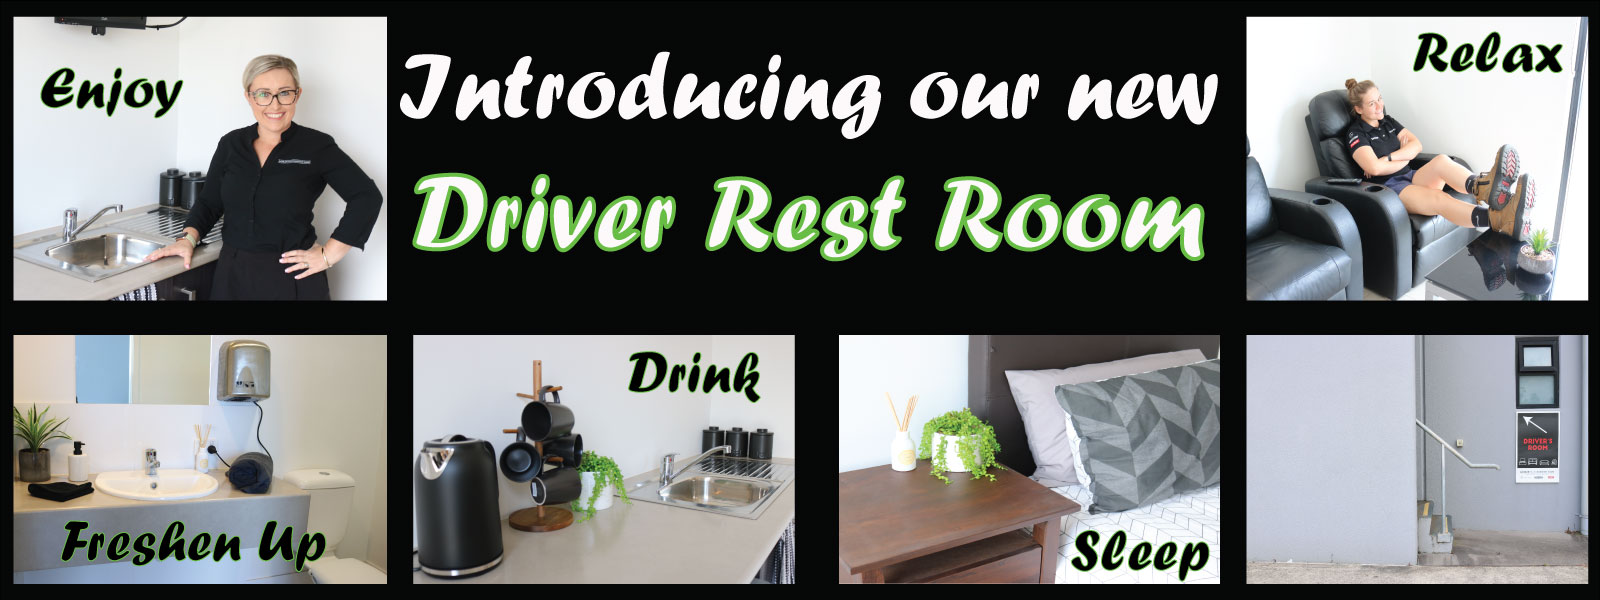 INTRODUCING OUR NEW DRIVER REST ROOM